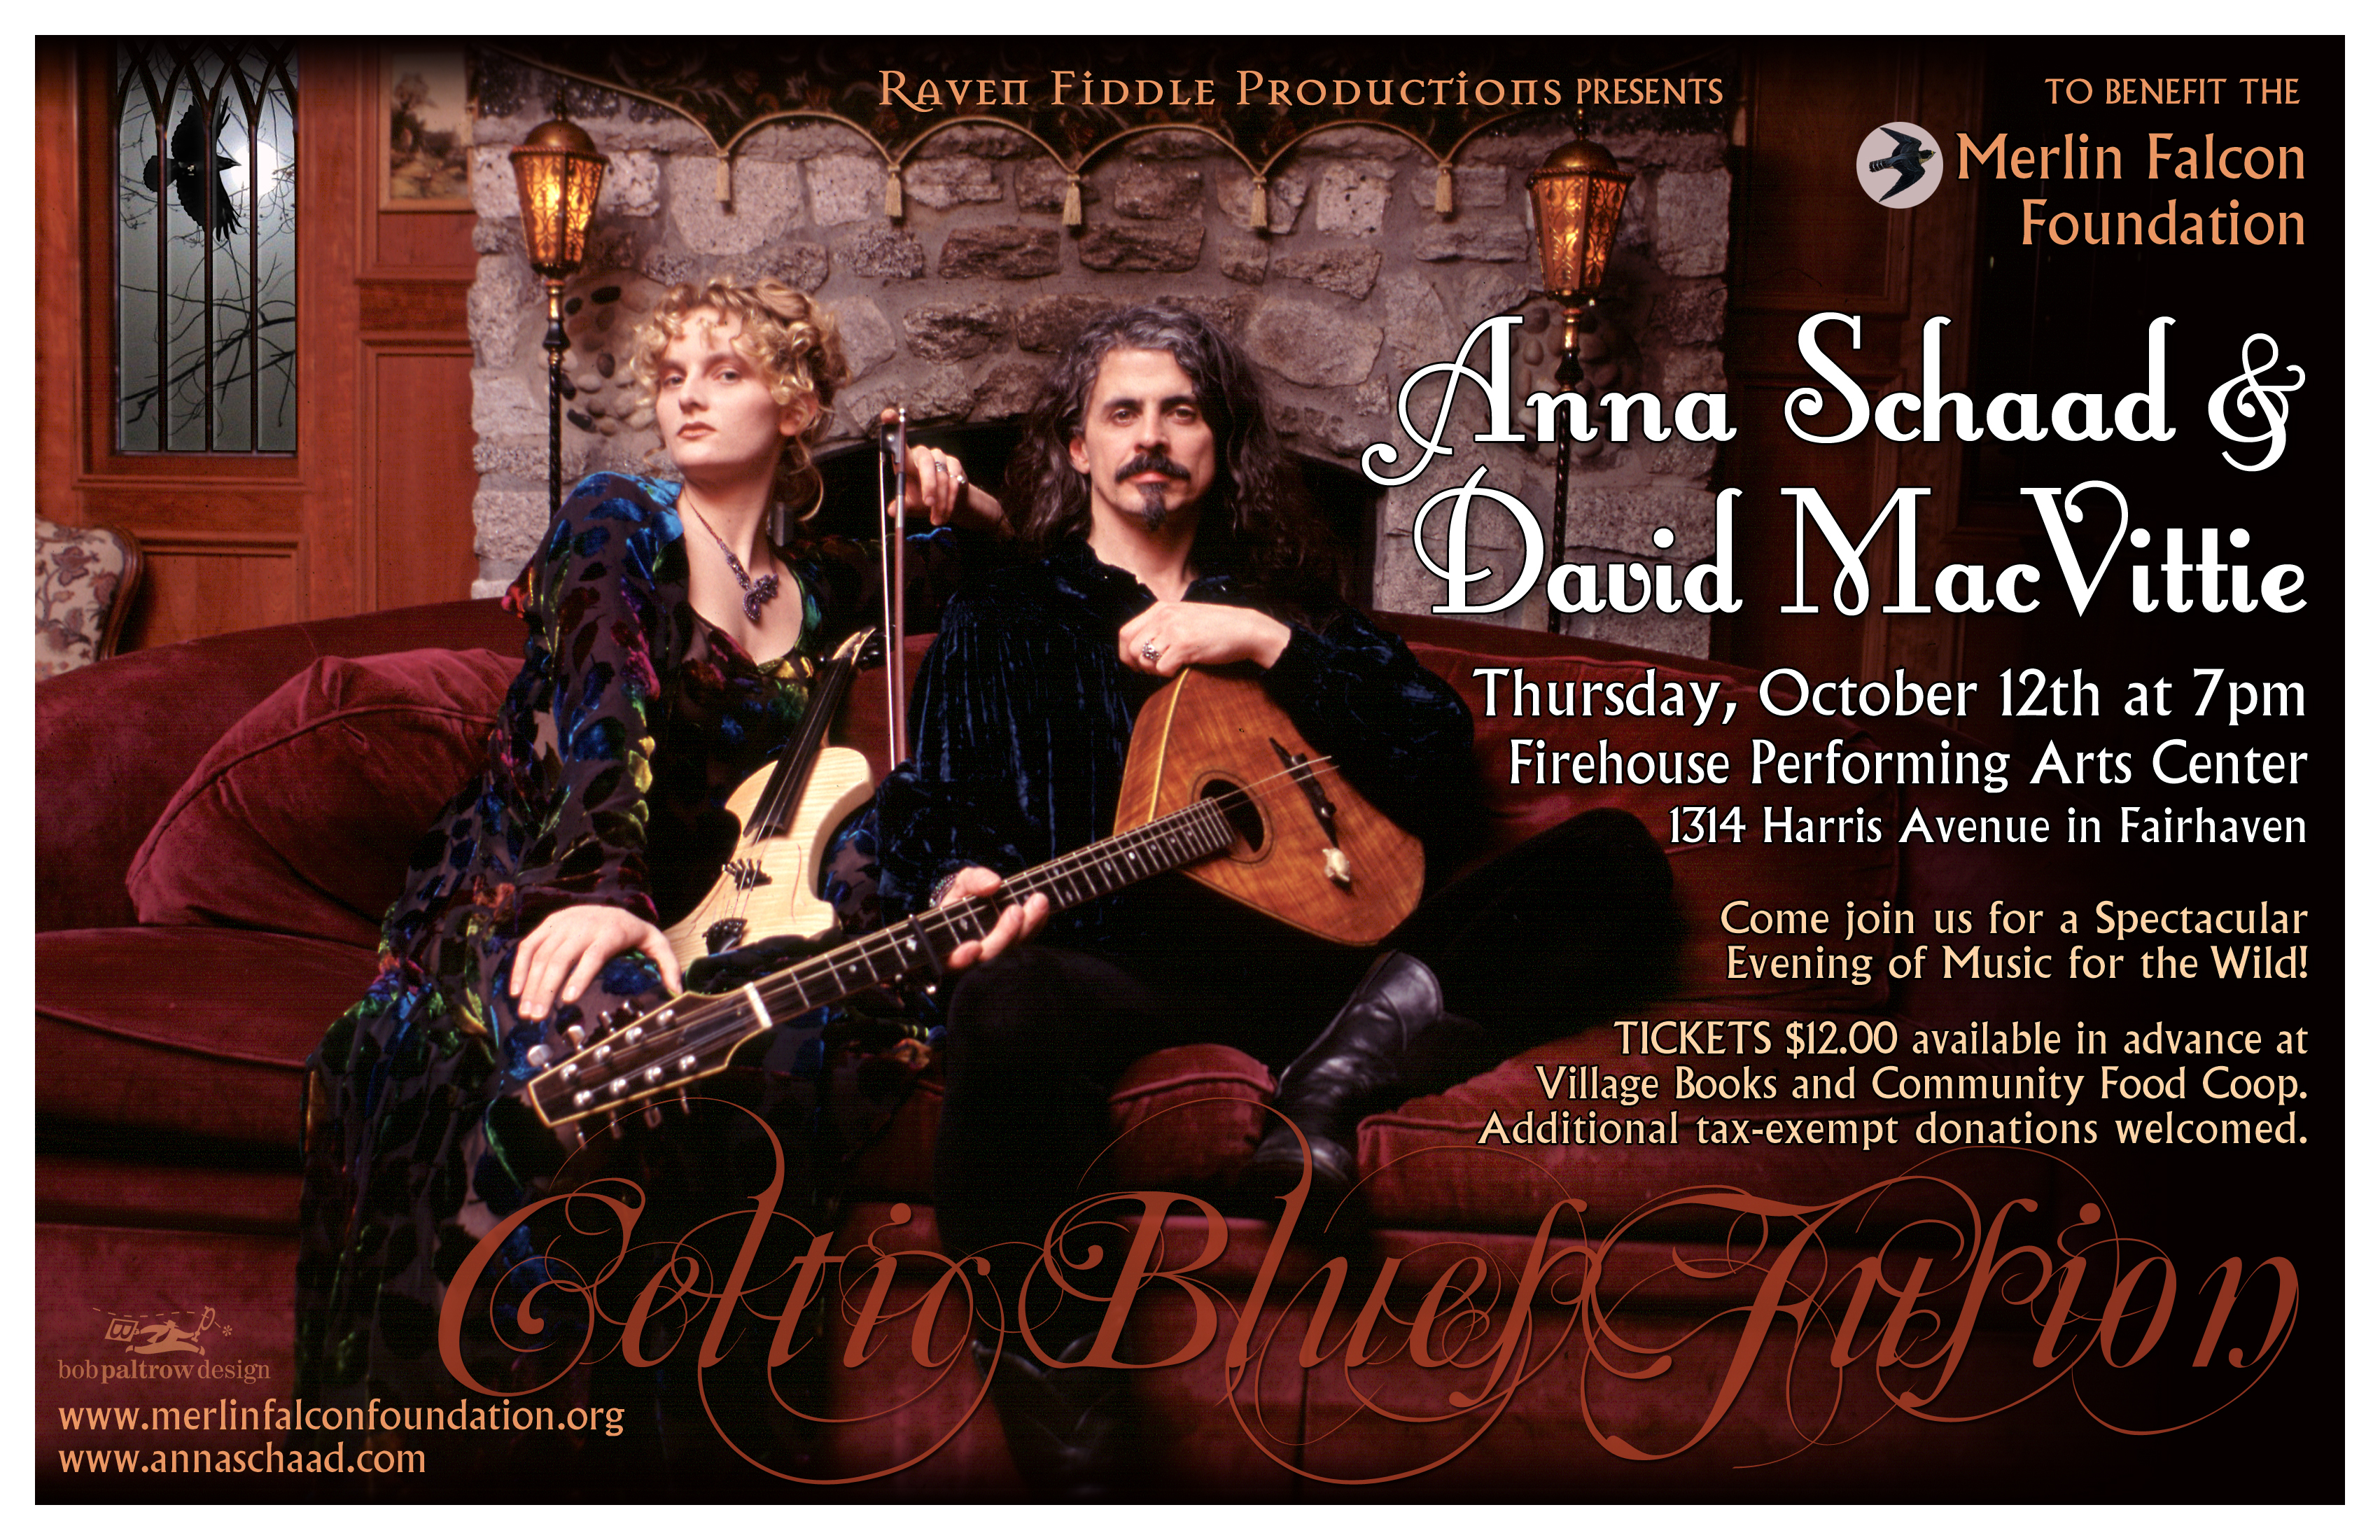 Concert Poster Design by Bob Paltrow Design. Bellingham WA. Client: Anna Schaad/Raven Fiddle Productions